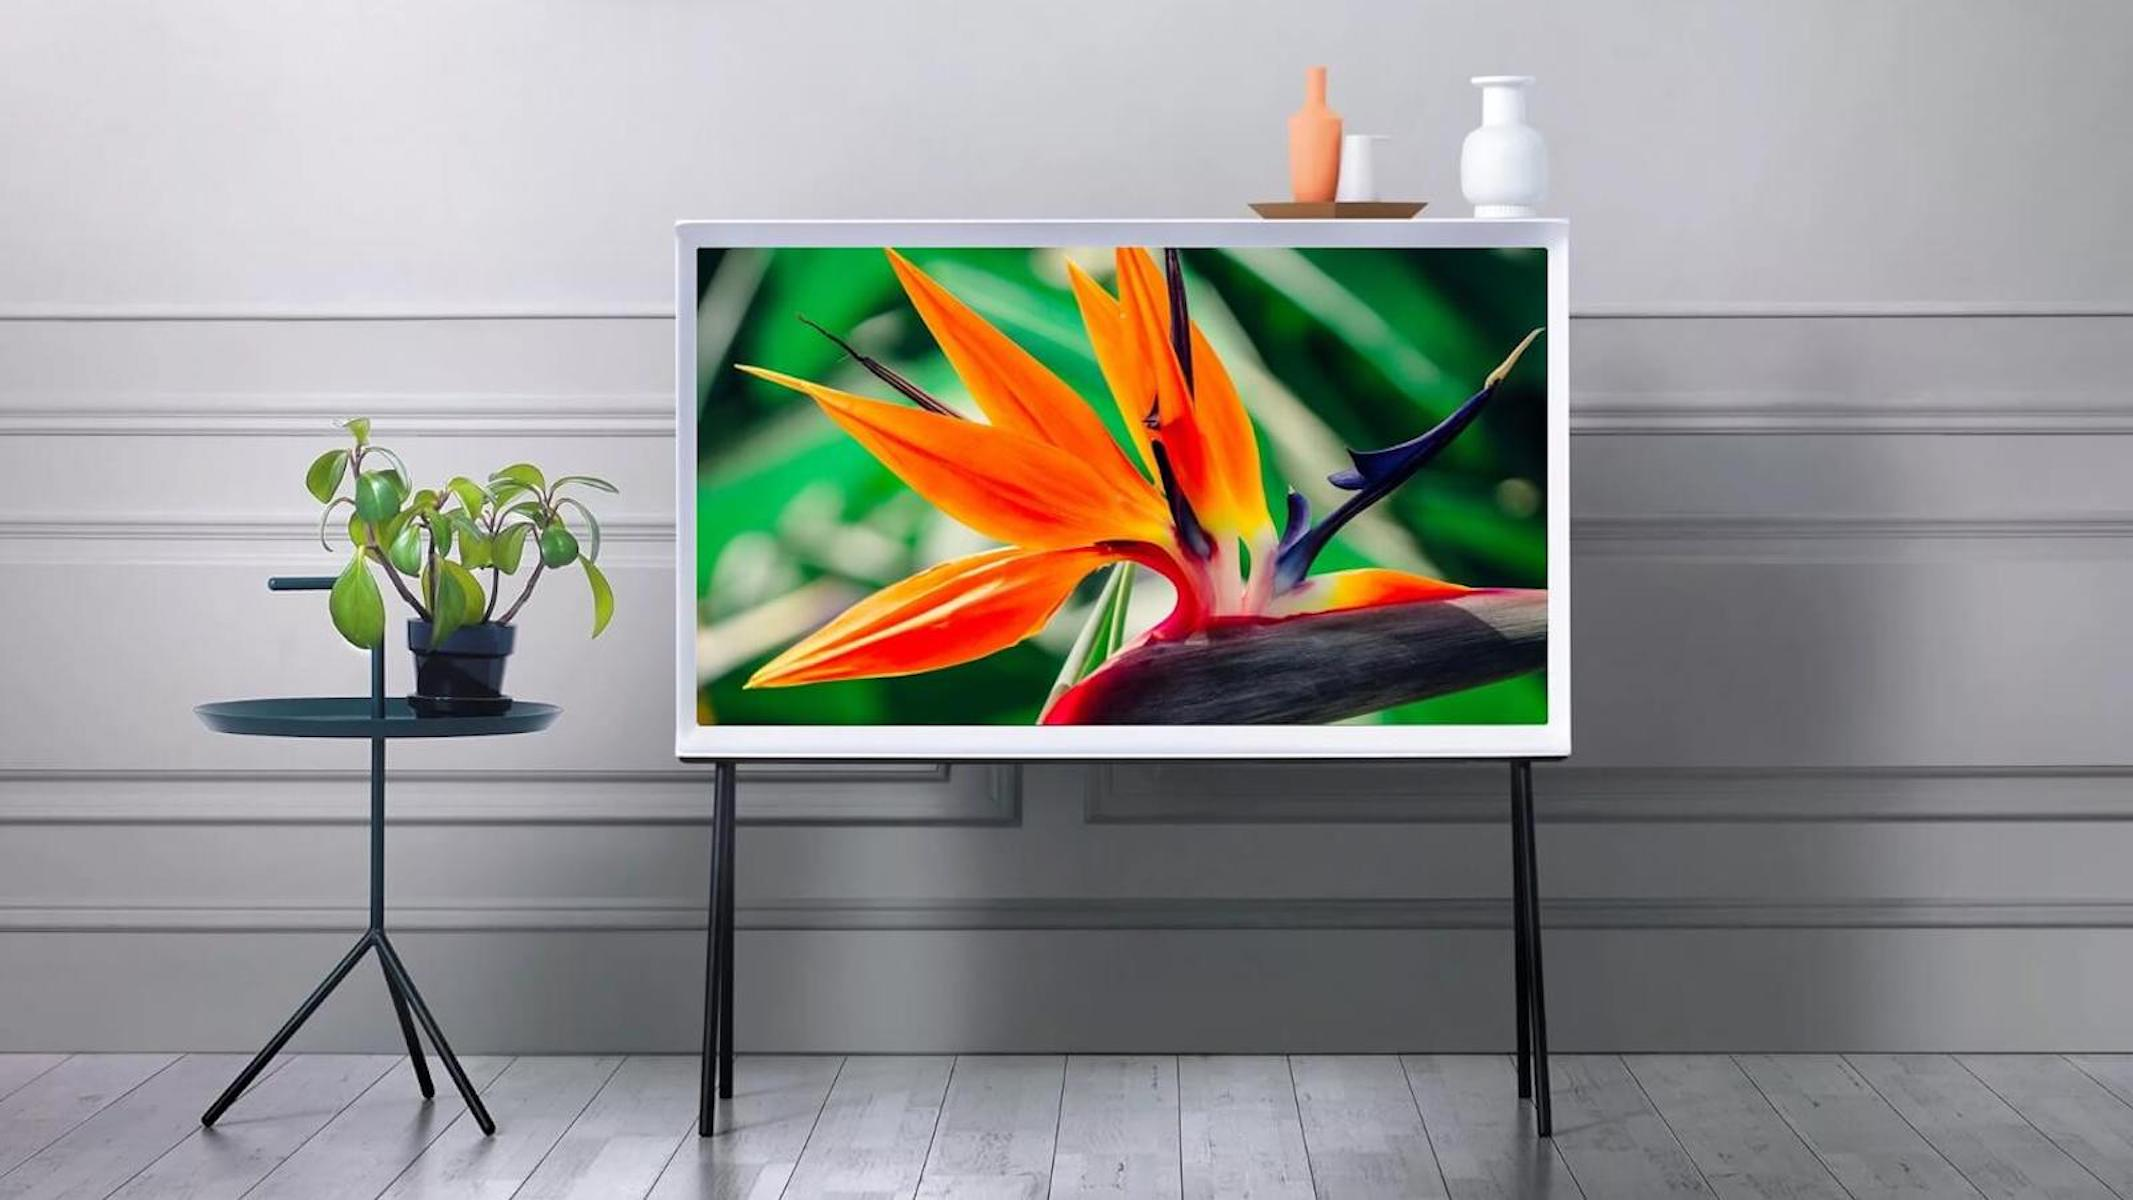 Best Samsung gadgets for 2021—smart monitor, frame TV, and more